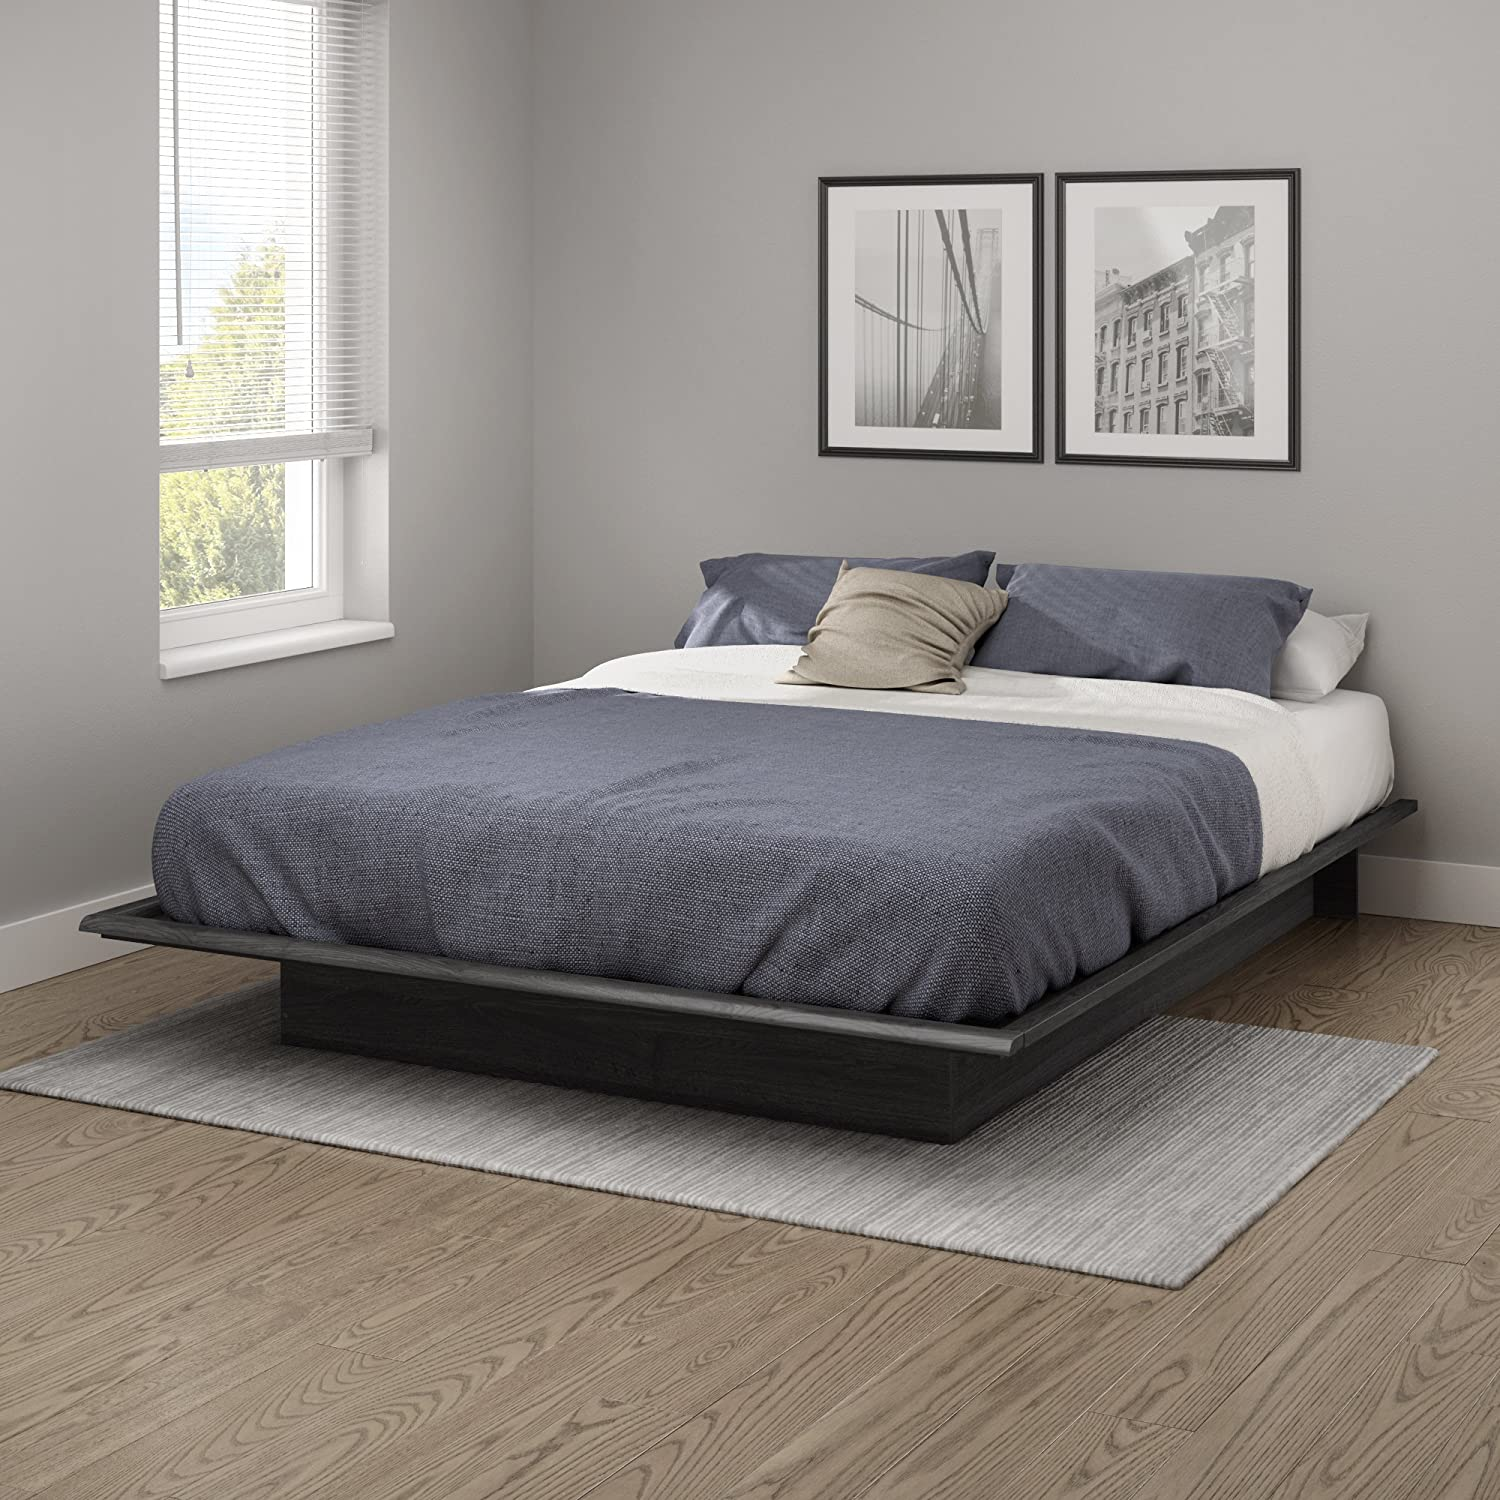 South Shore Step One Queen Platform Bed 60 , Gray Oak, 60 ,